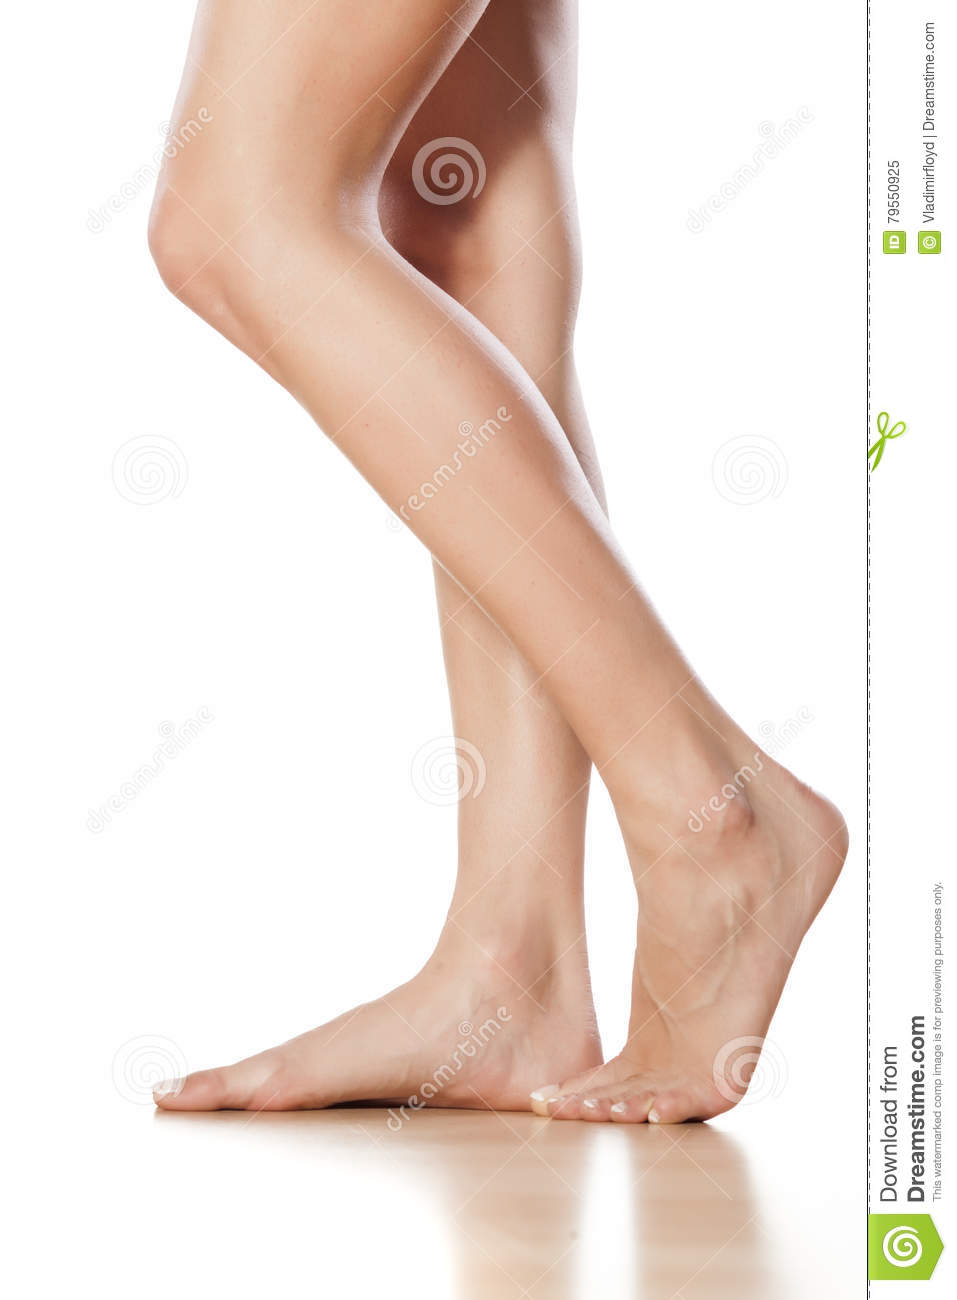 Hot Bare Legs And Feet